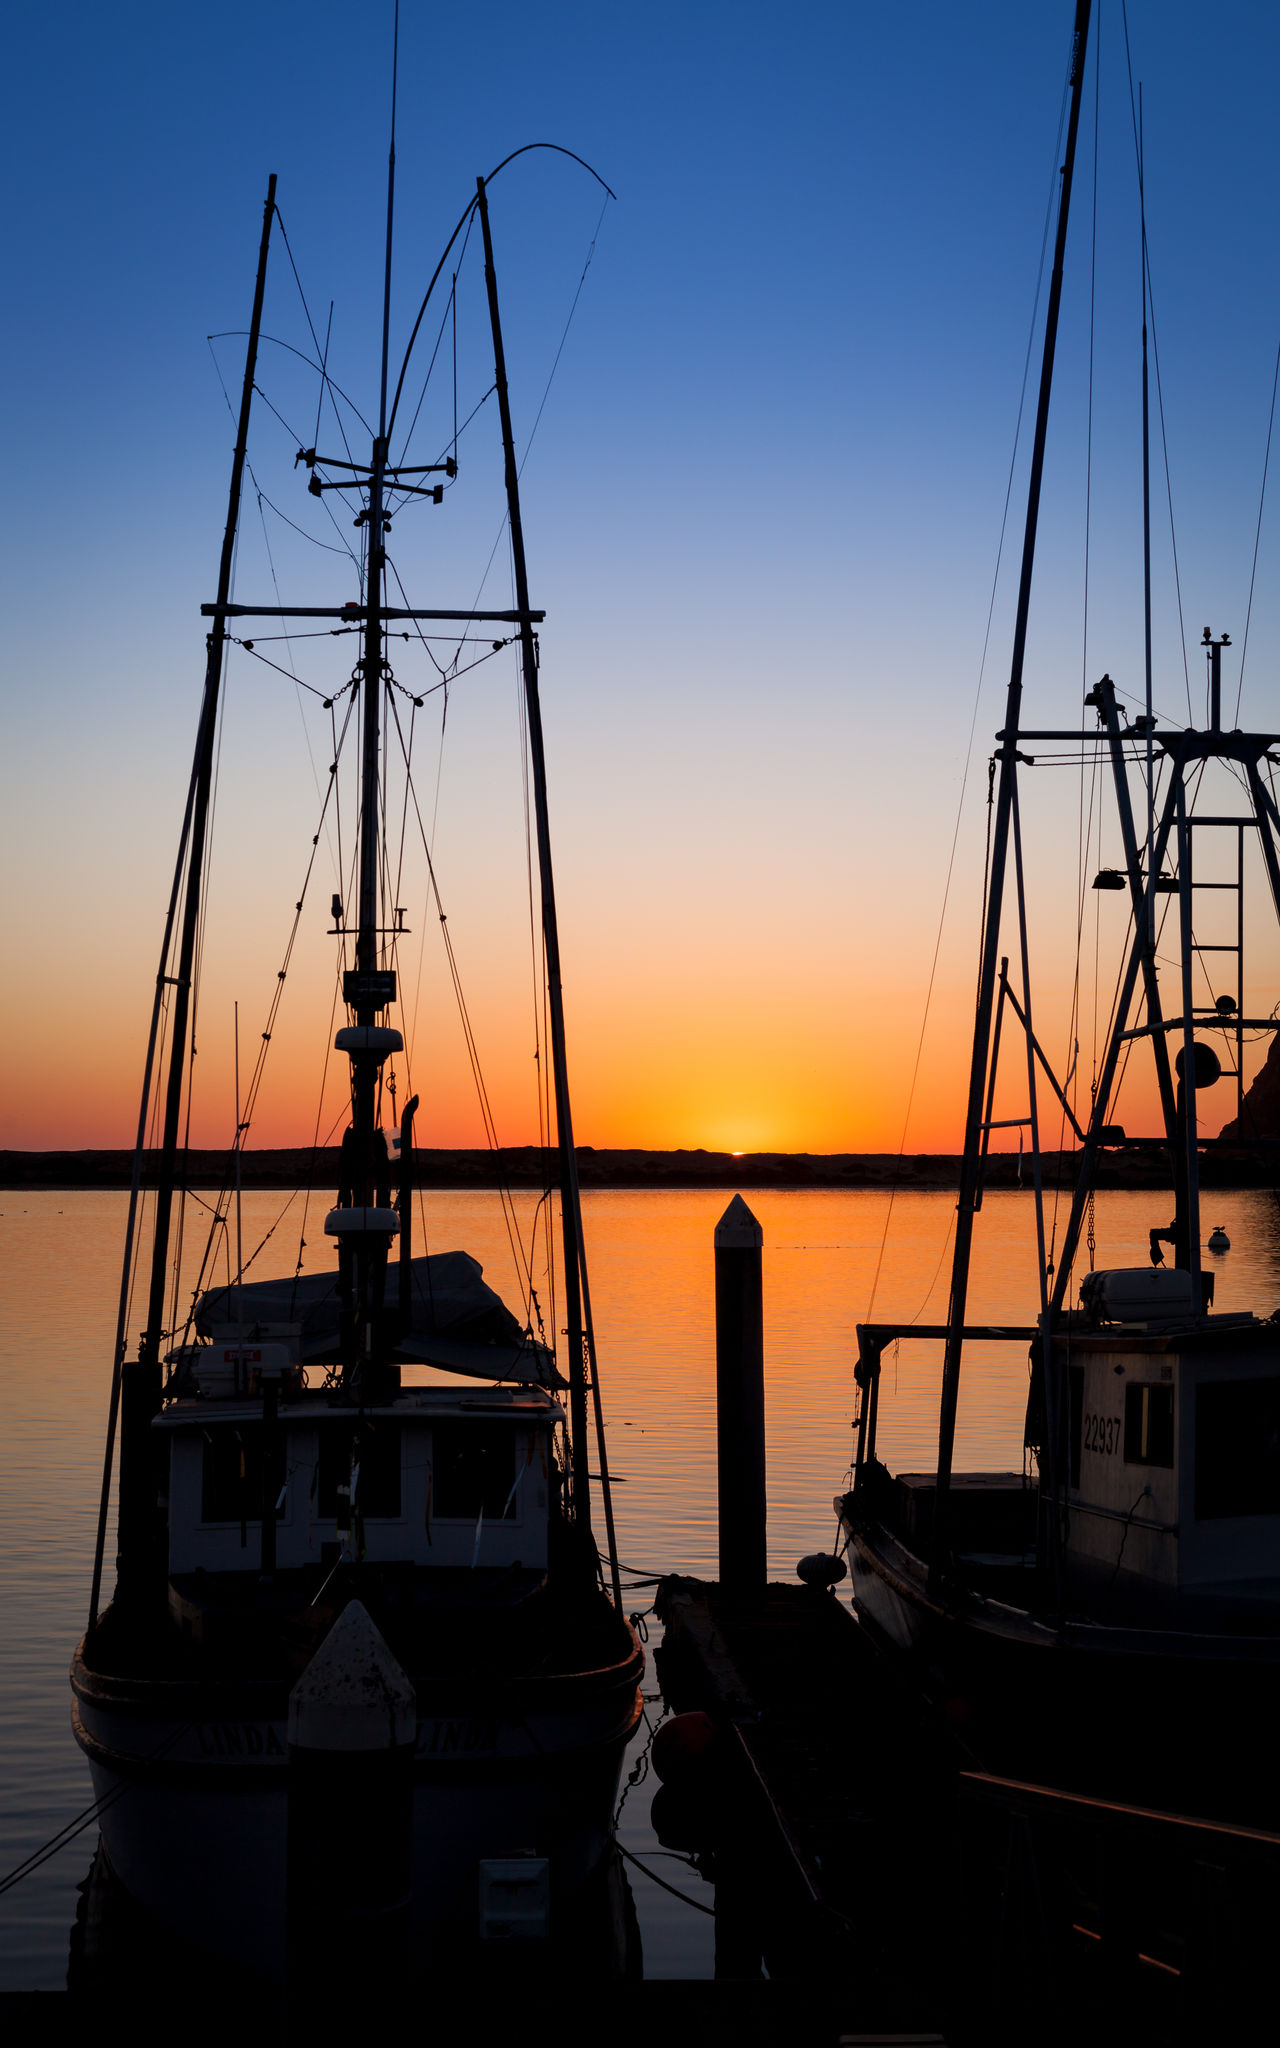 Boat Mast Nautical Vessel No People Outdoors Rigging Romantic Sky Sailboat Sailing Sailing Ship Sea Silhouette Sky Sunlight Sunset Sunset Silhouettes Water